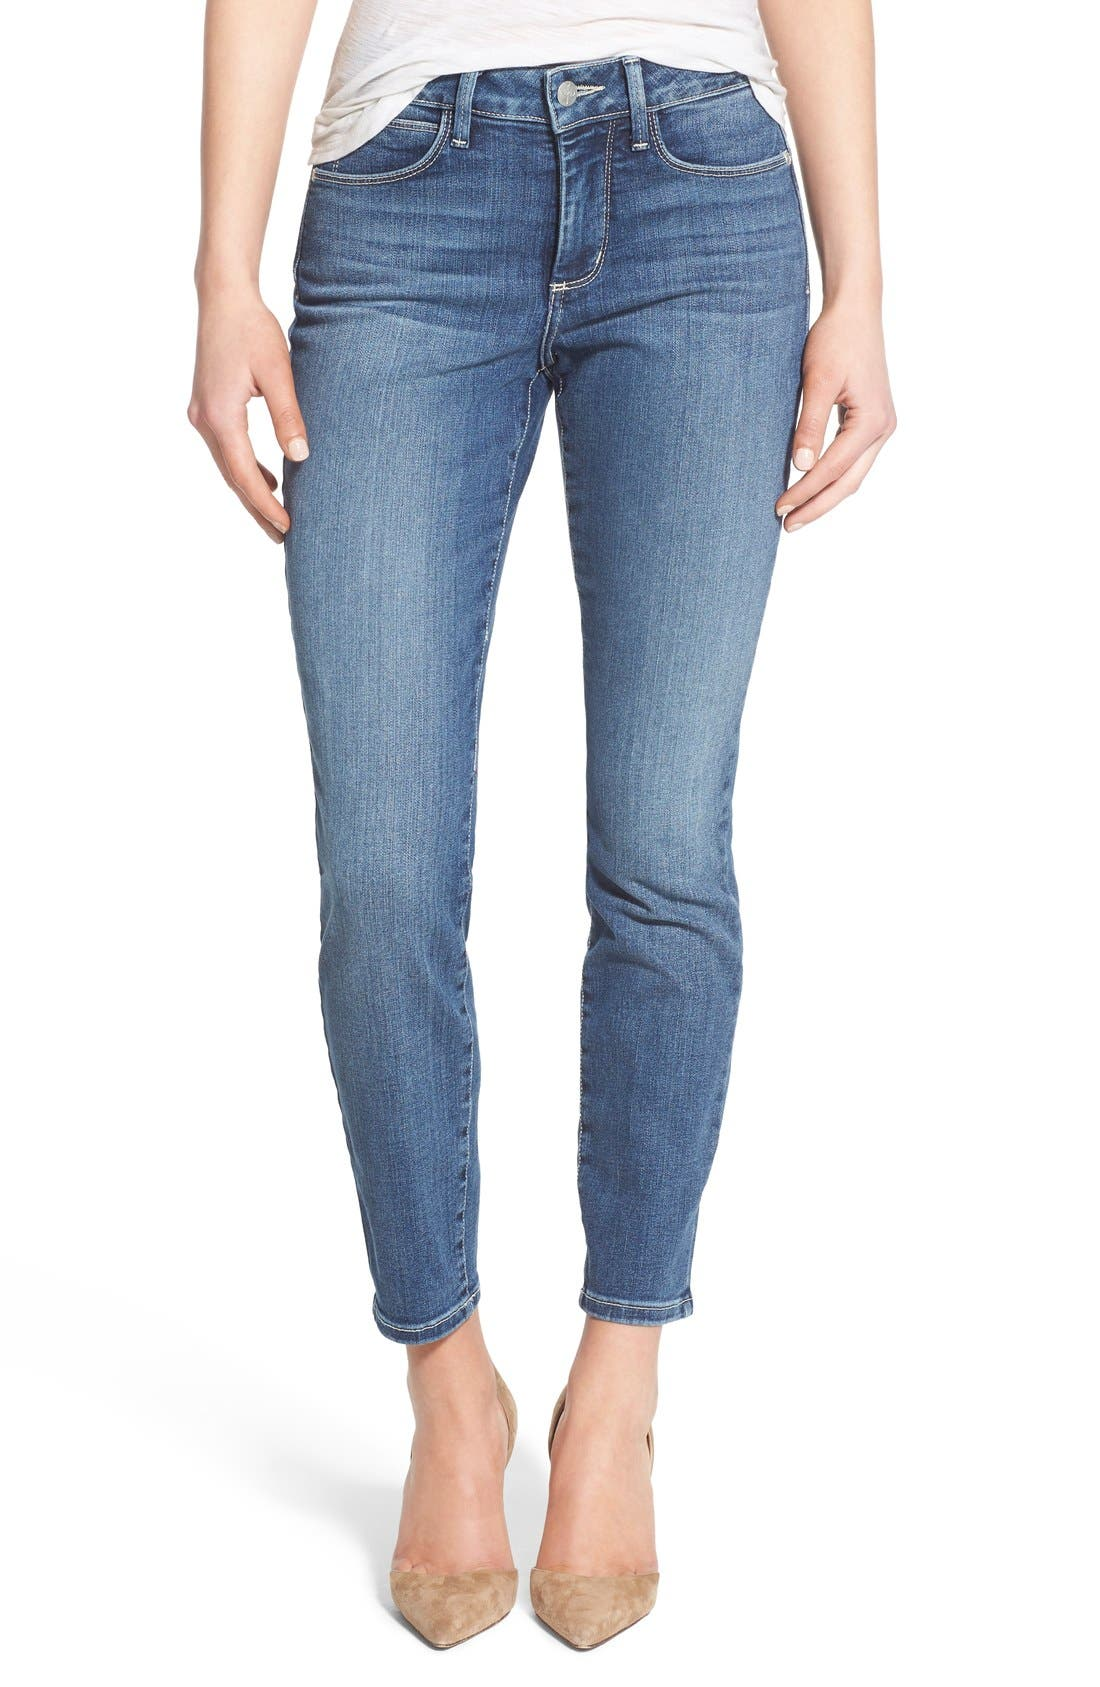 'Clarissa' Stretch Ankle Skinny Jeans,                             Main thumbnail 1, color,                             421